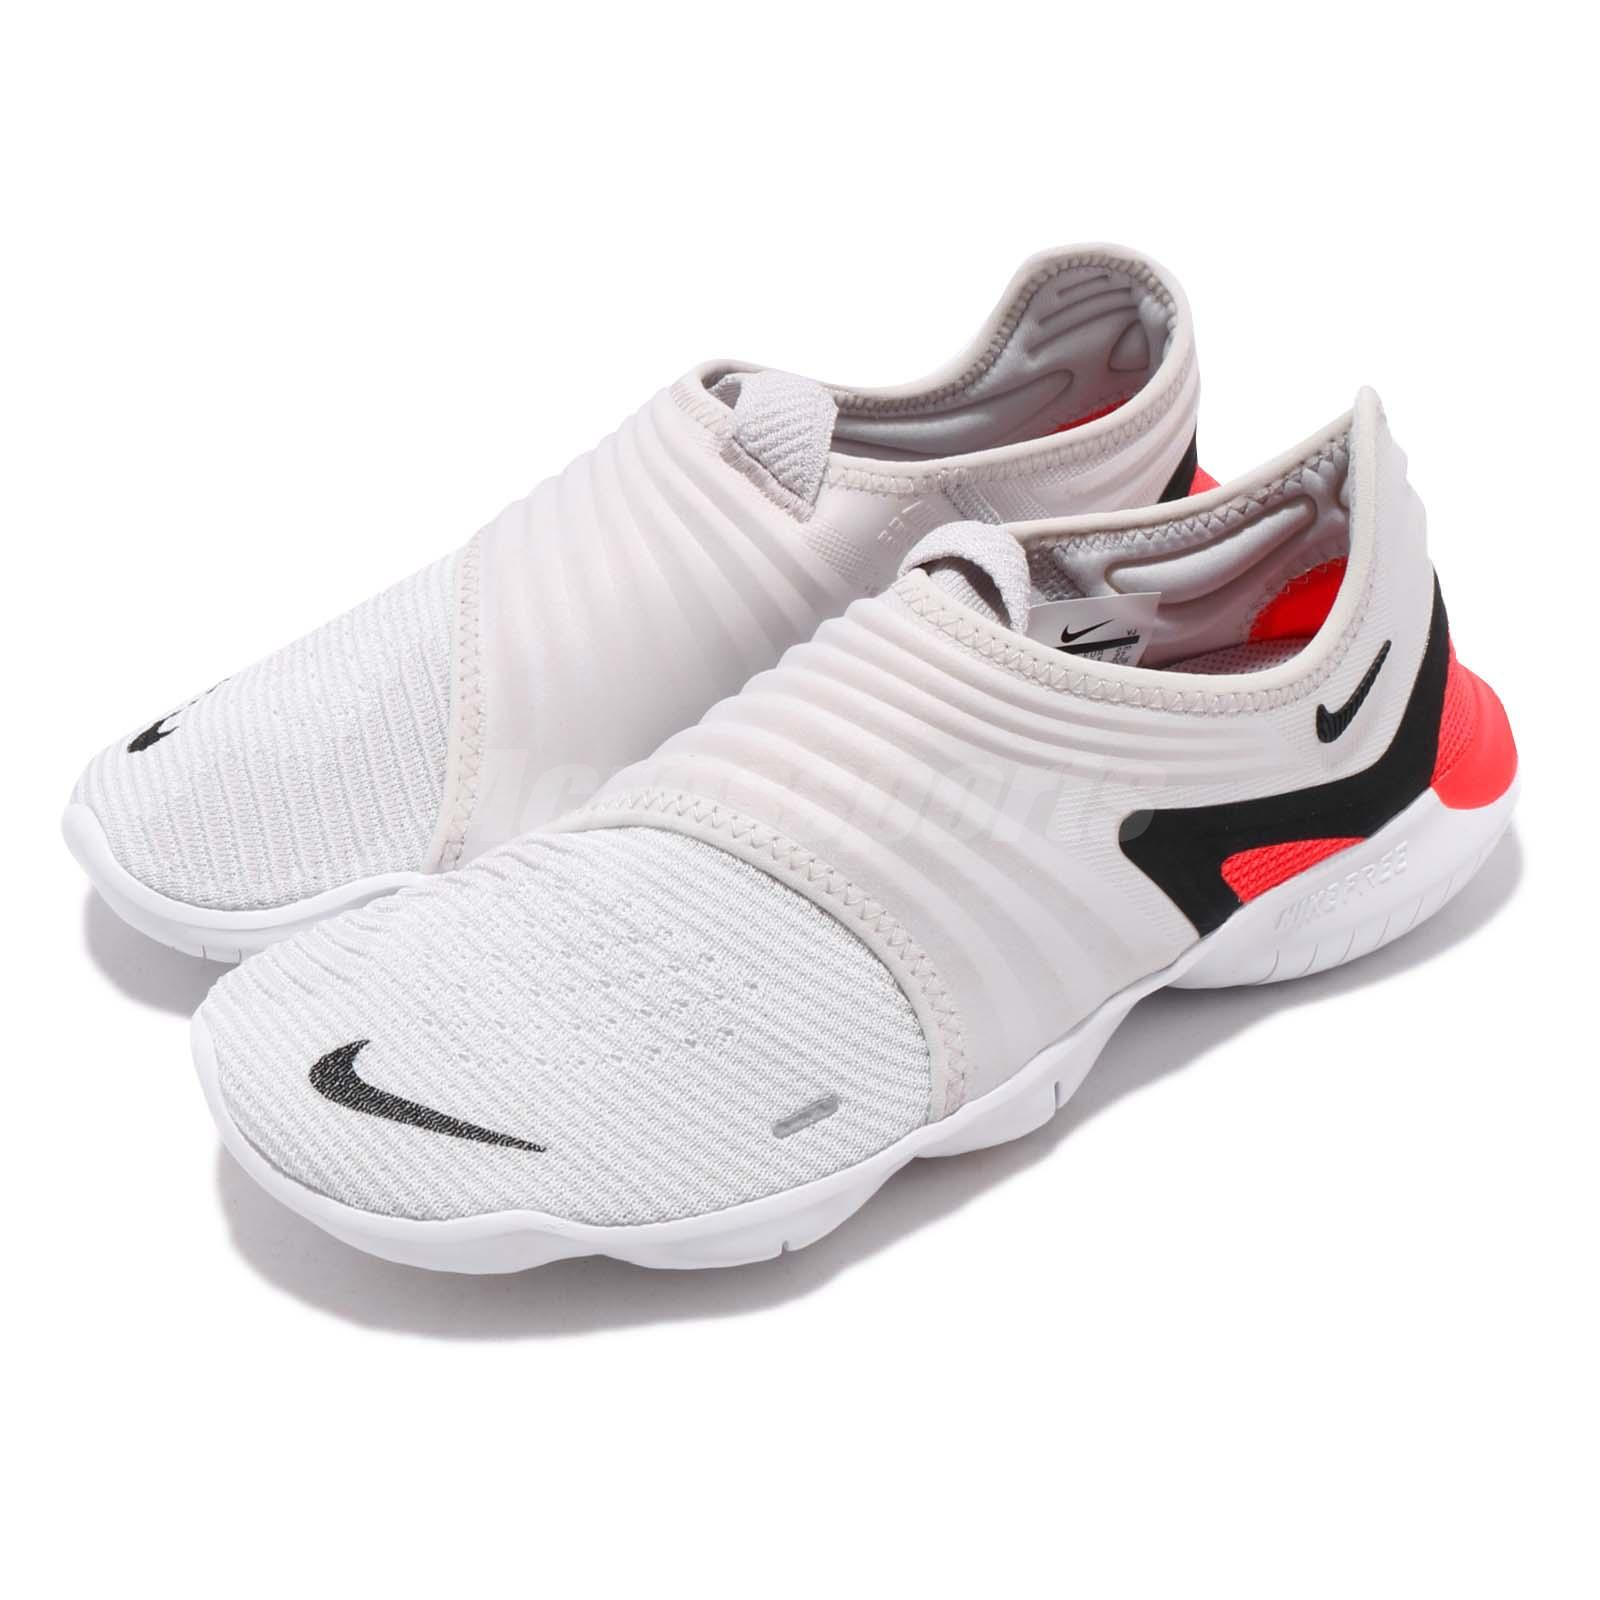 hot sale online cdc2f c99b1 Details about Nike Free RN Flyknit 3.0 Grey Black White Red Men Running  Shoes AQ5707-002